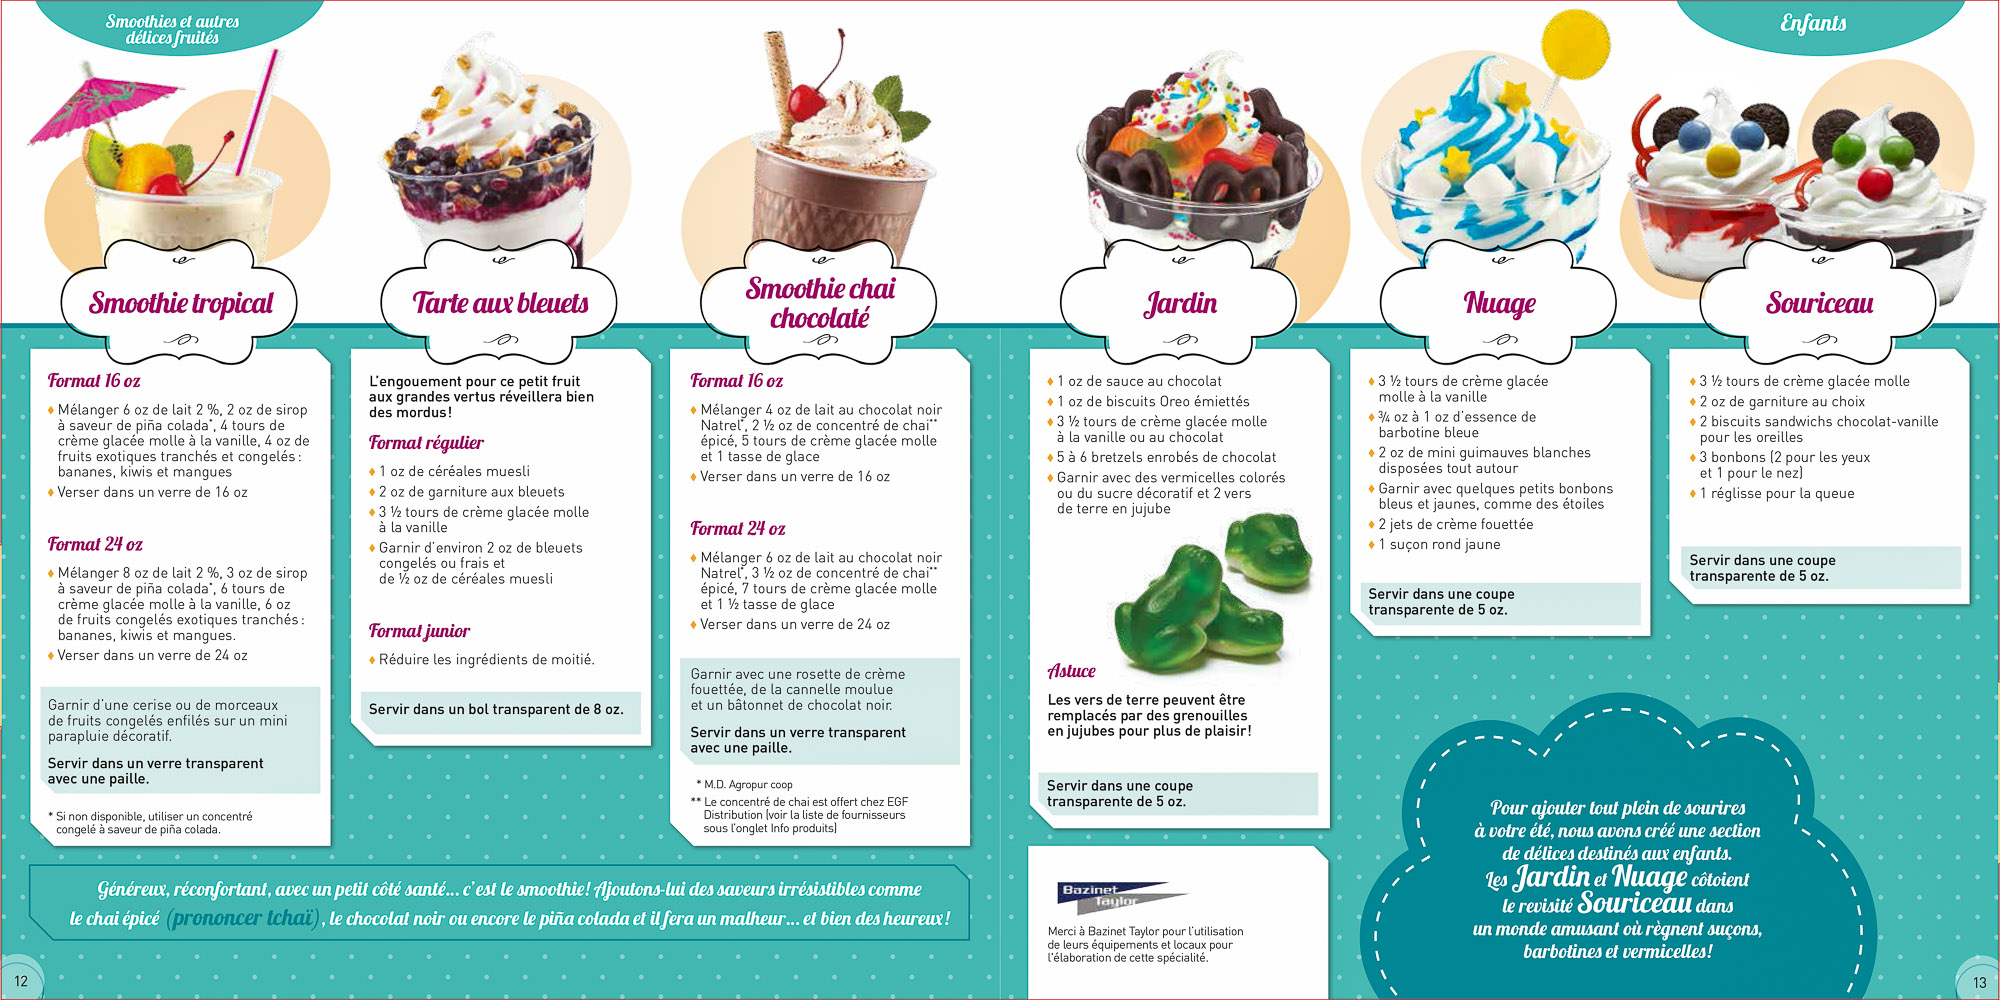 Québon2013_Guide-Bar-Laitier